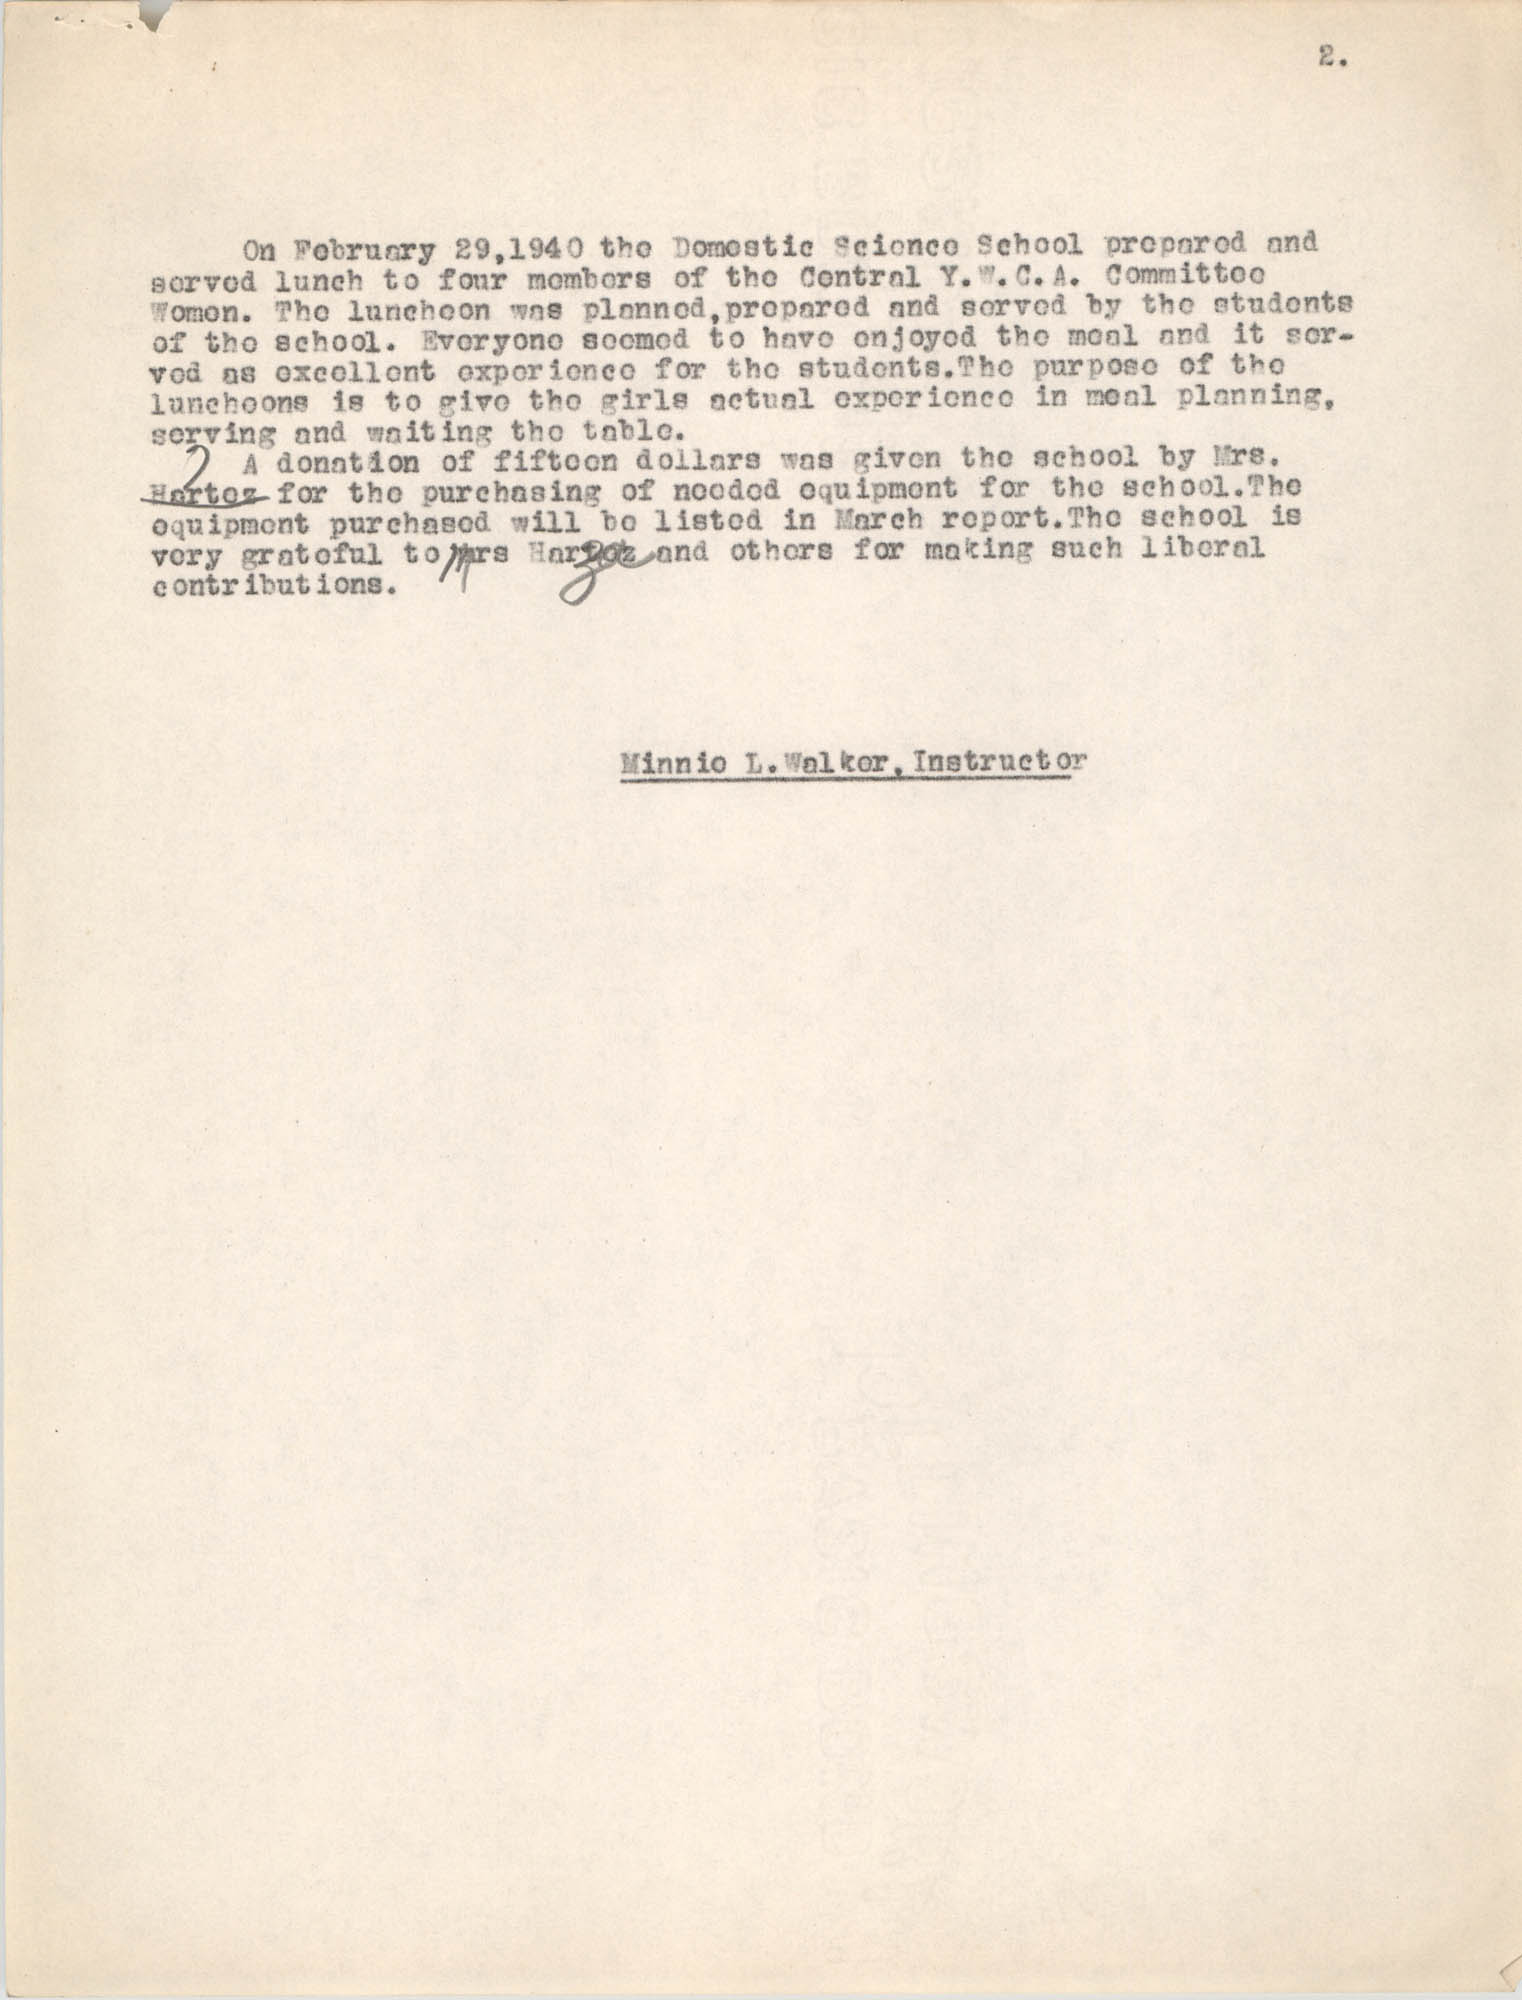 Monthly Training School Report for the Coming Street Y.W.C.A., February 1940, Page 2